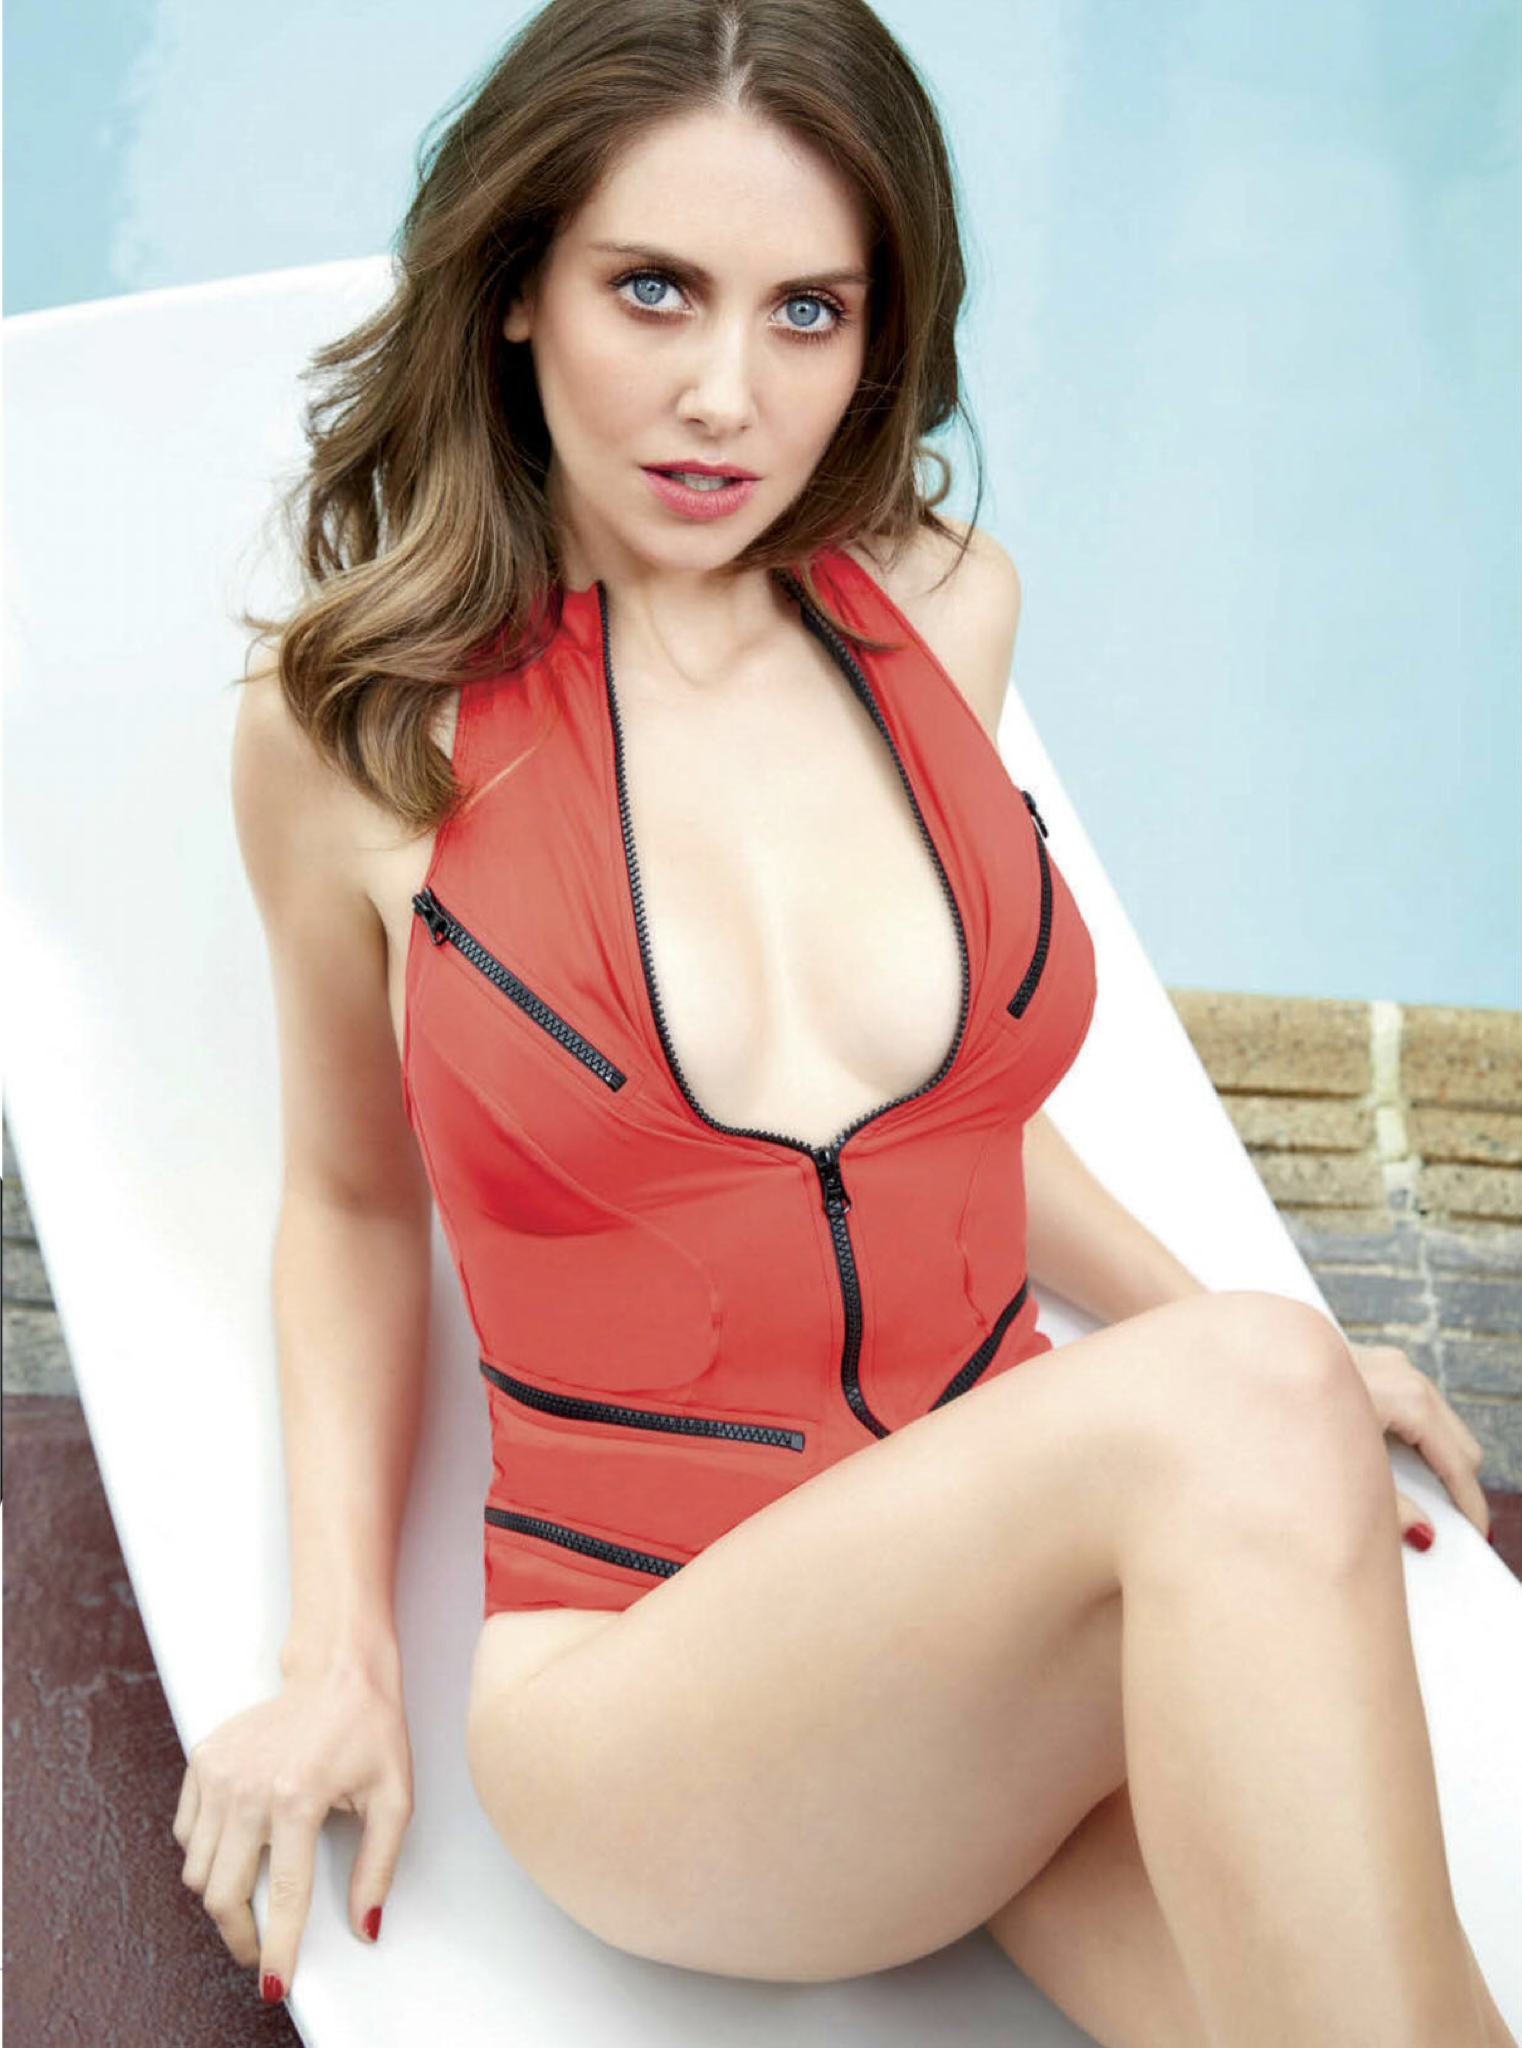 alison_brie-_1.png